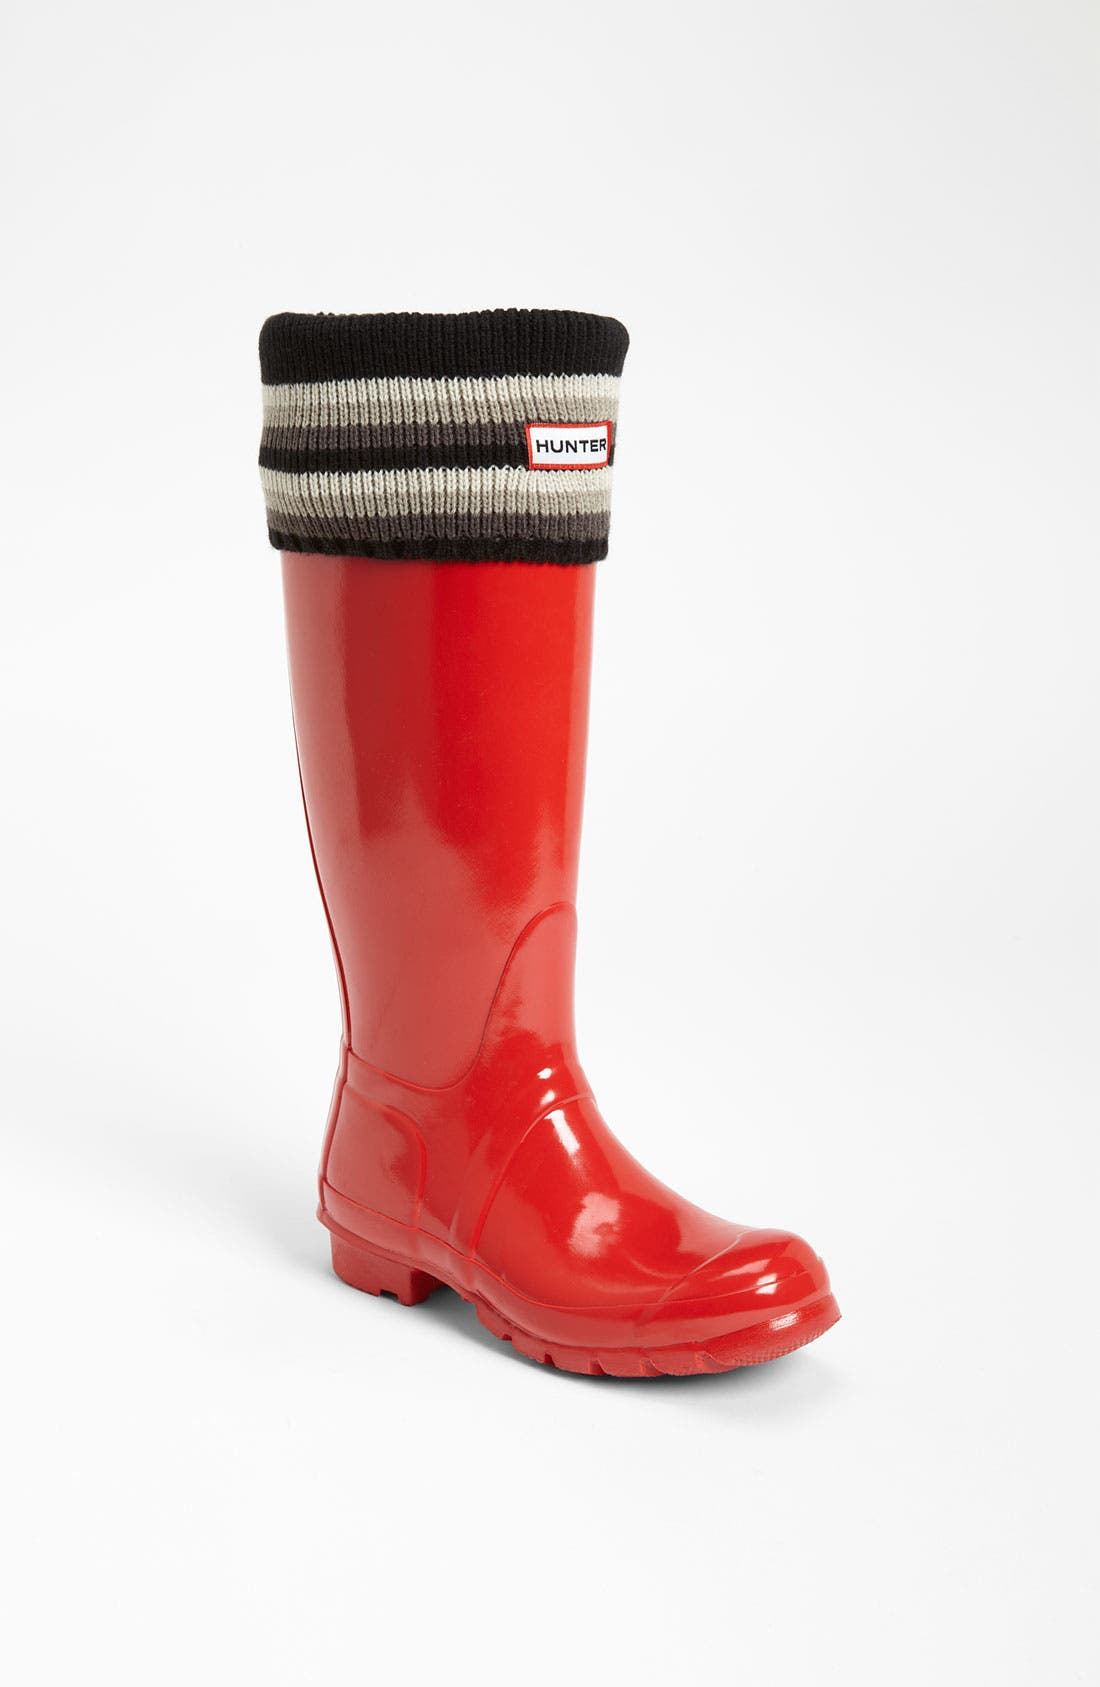 Main Image - Hunter Tall Gloss Rain Boot & Pattern Cuff Welly Socks